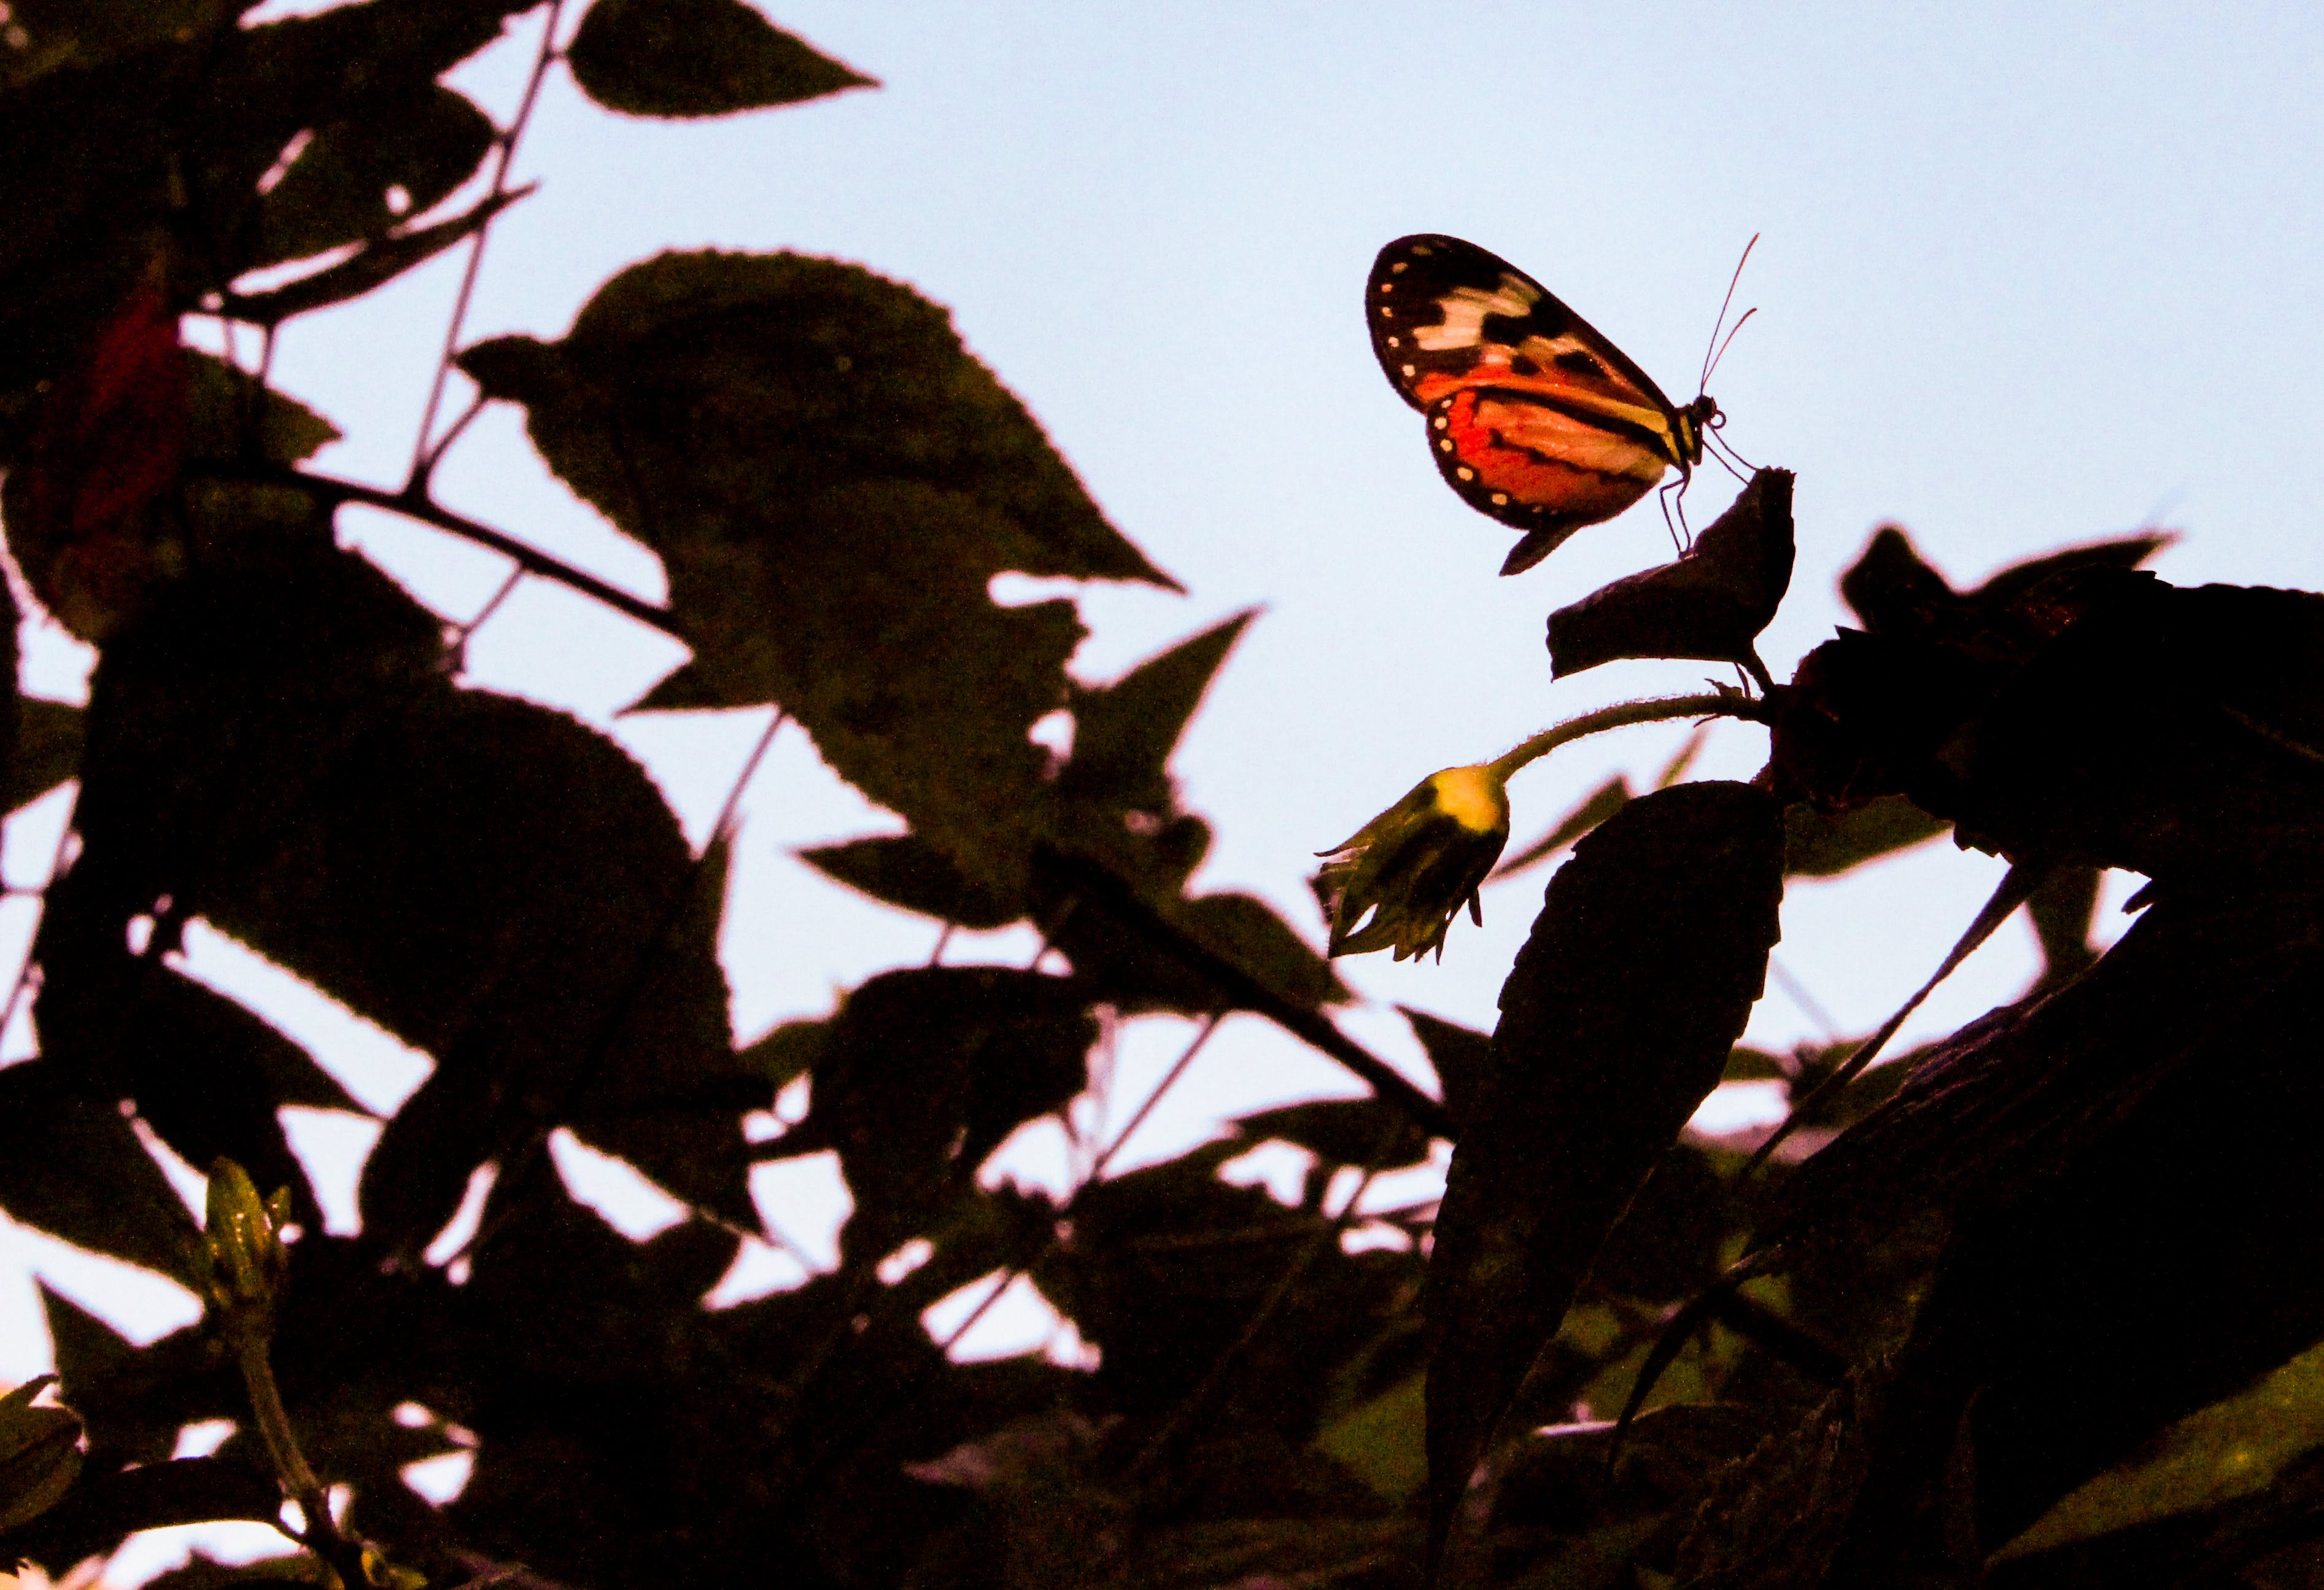 Selective Focus Photography of Red Longwing Butterfly Perched on Green Leaf